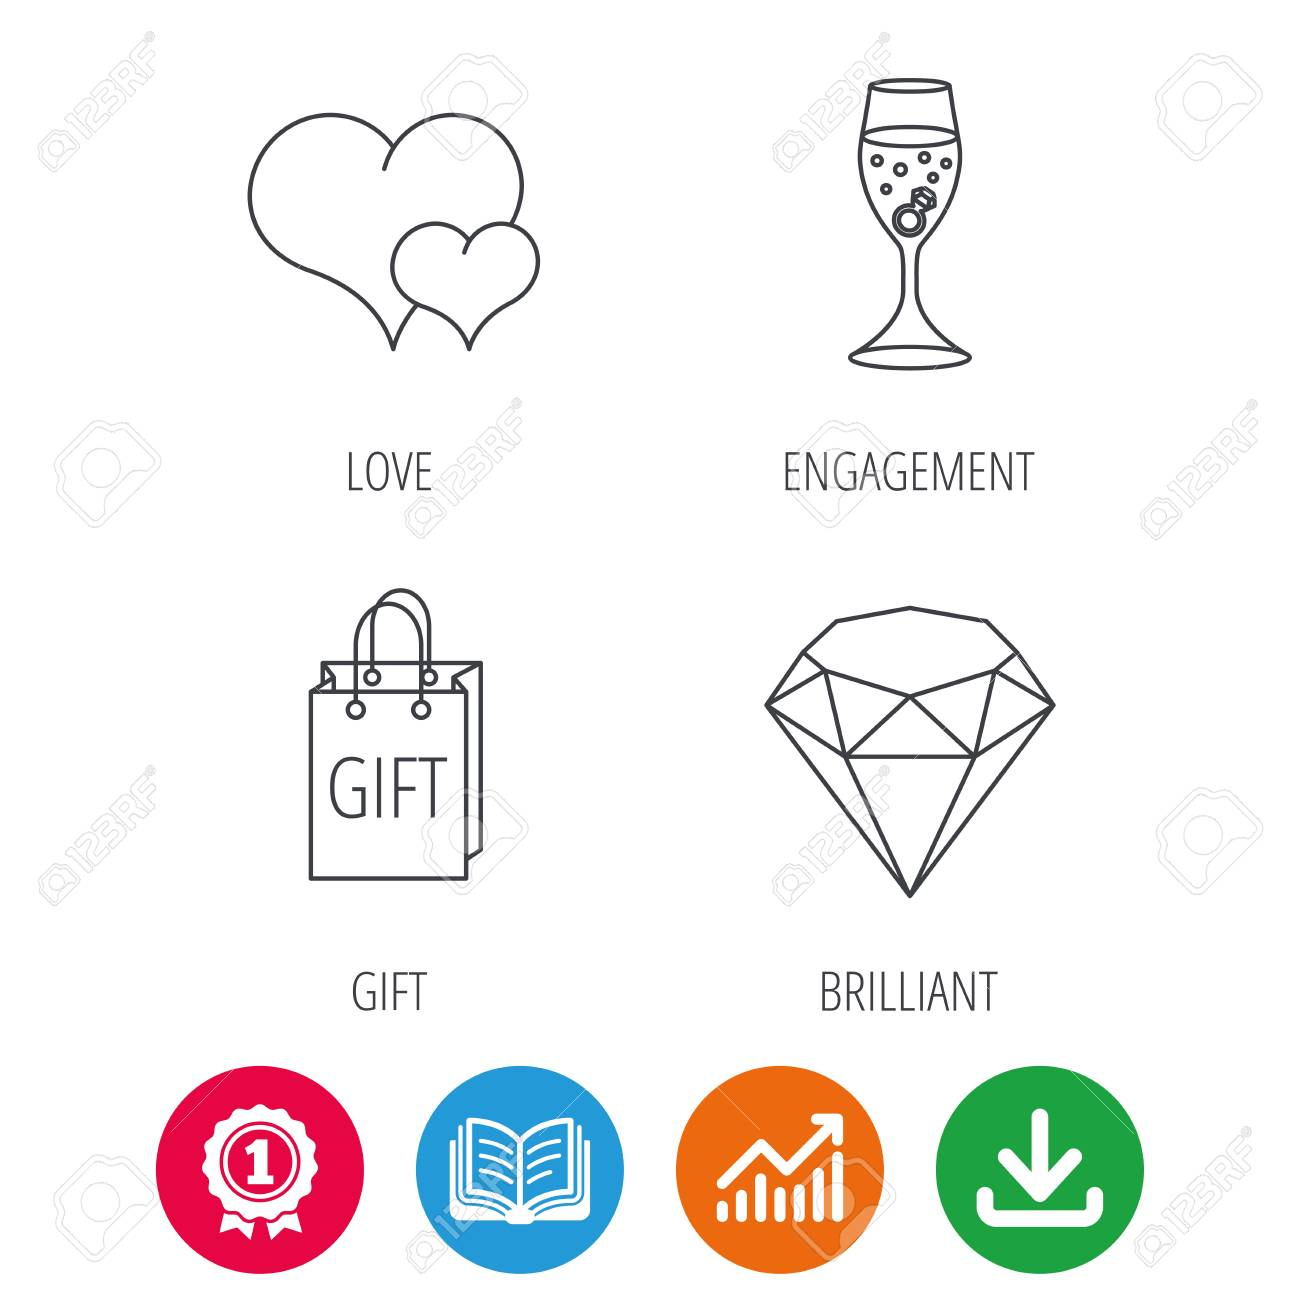 Love heart gift box and wedding ring icons brilliant and love heart gift box and wedding ring icons brilliant and engagement linear signs ccuart Images